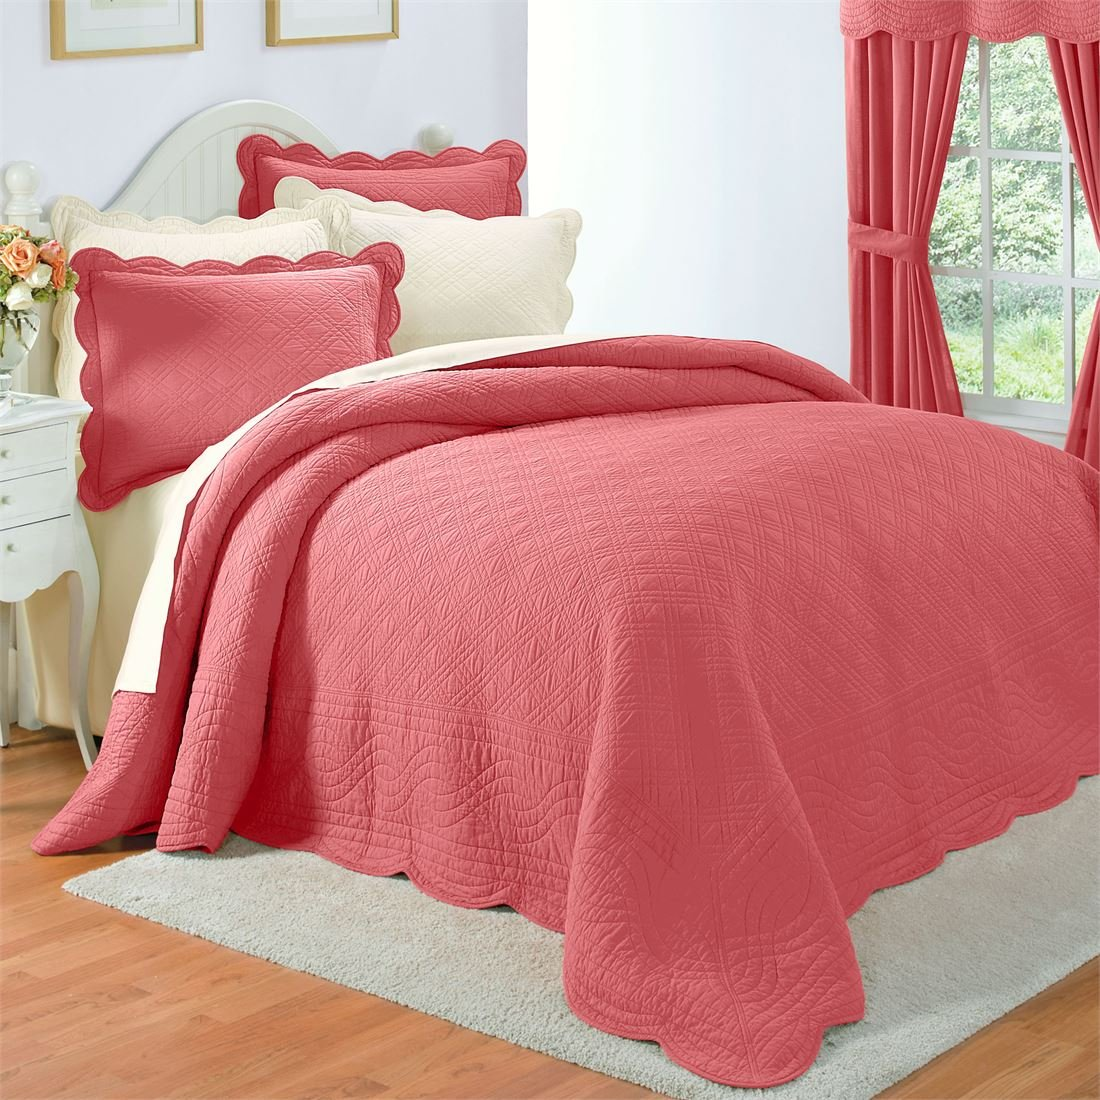 Brylanehome Florence Bedspread (Dusty Rose,King